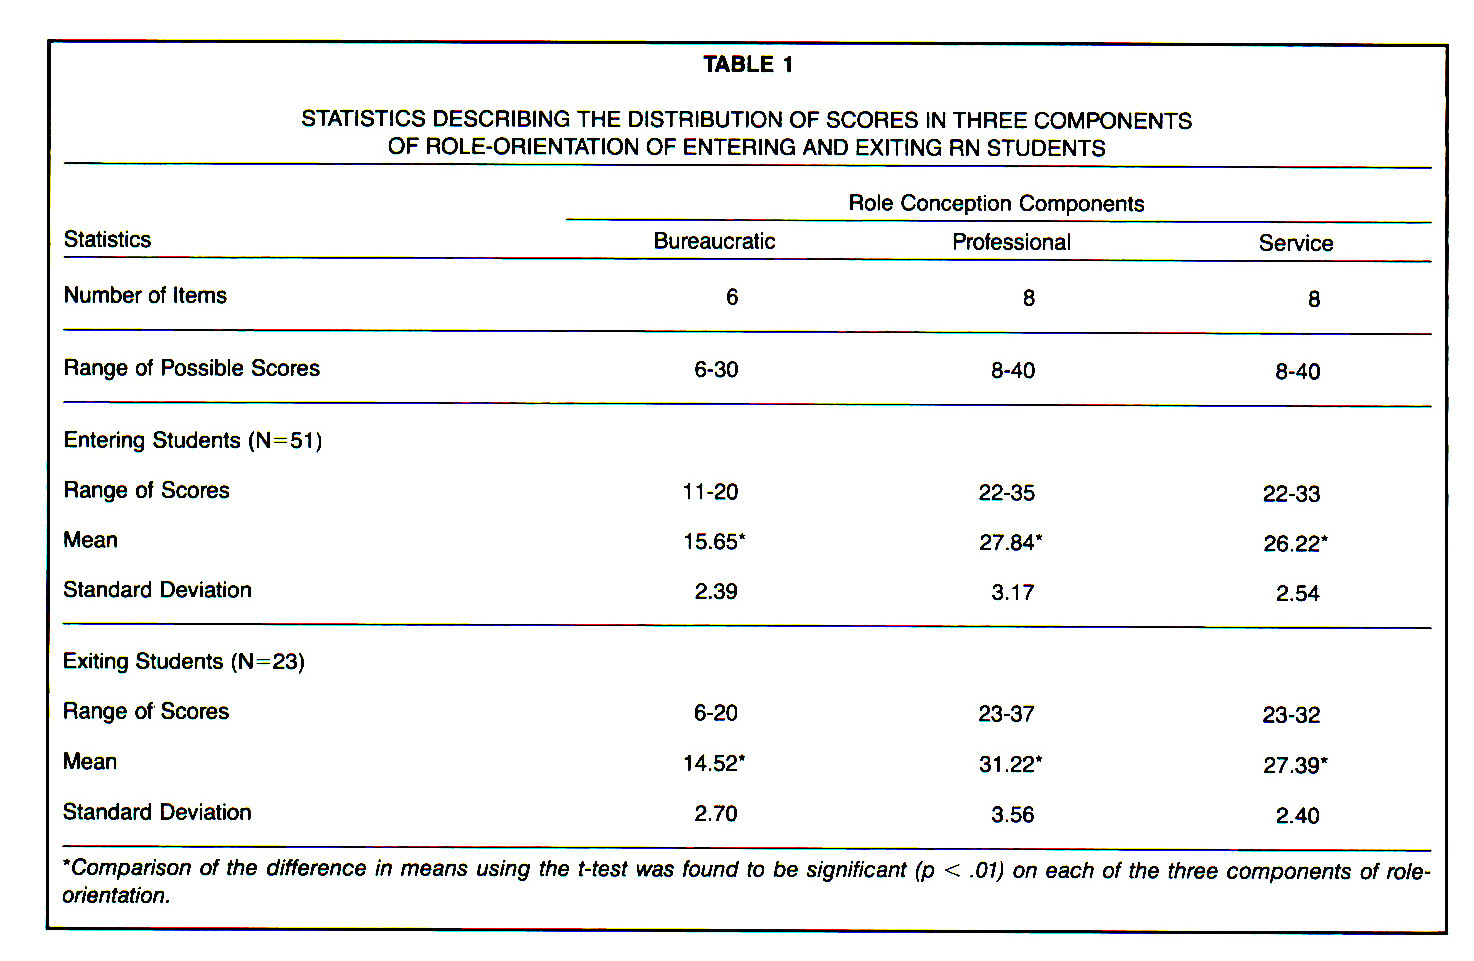 TABLE 1STATISTICS DESCRIBING THE DISTRIBUTION OF SCORES IN THREE COMPONENTS OF ROLE-ORIENTATION OF ENTERING AND EXITING RN STUDENTS